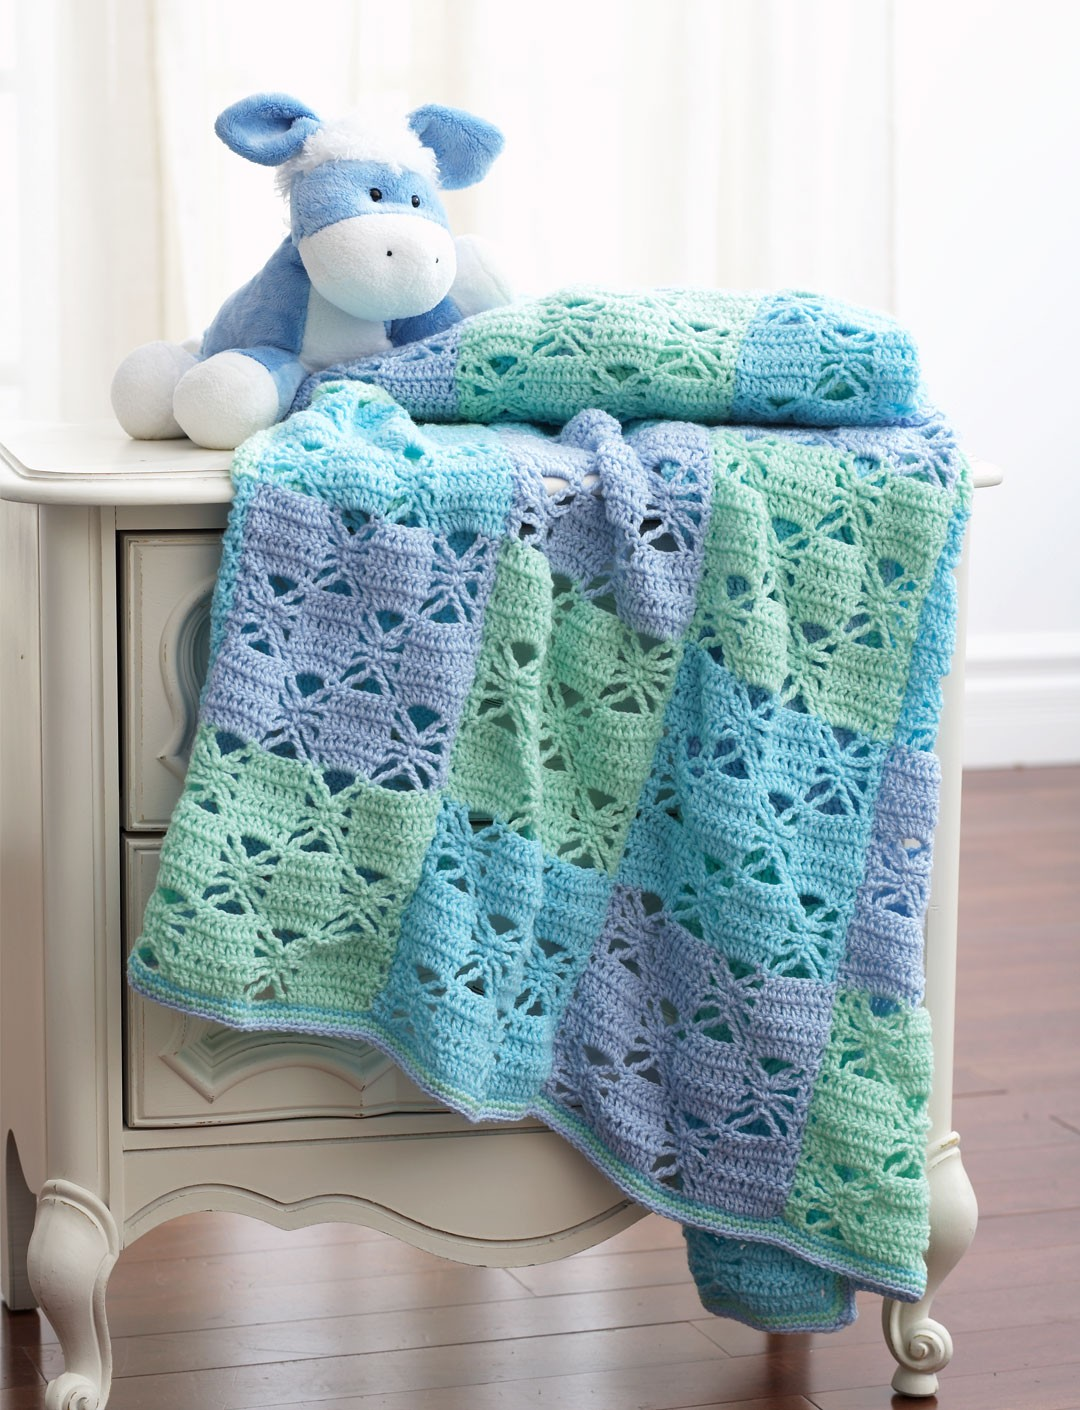 Knitting Patterns For Bernat Baby Sport Yarn : 3 Color Crochet Blanket - Patterns Yarnspirations